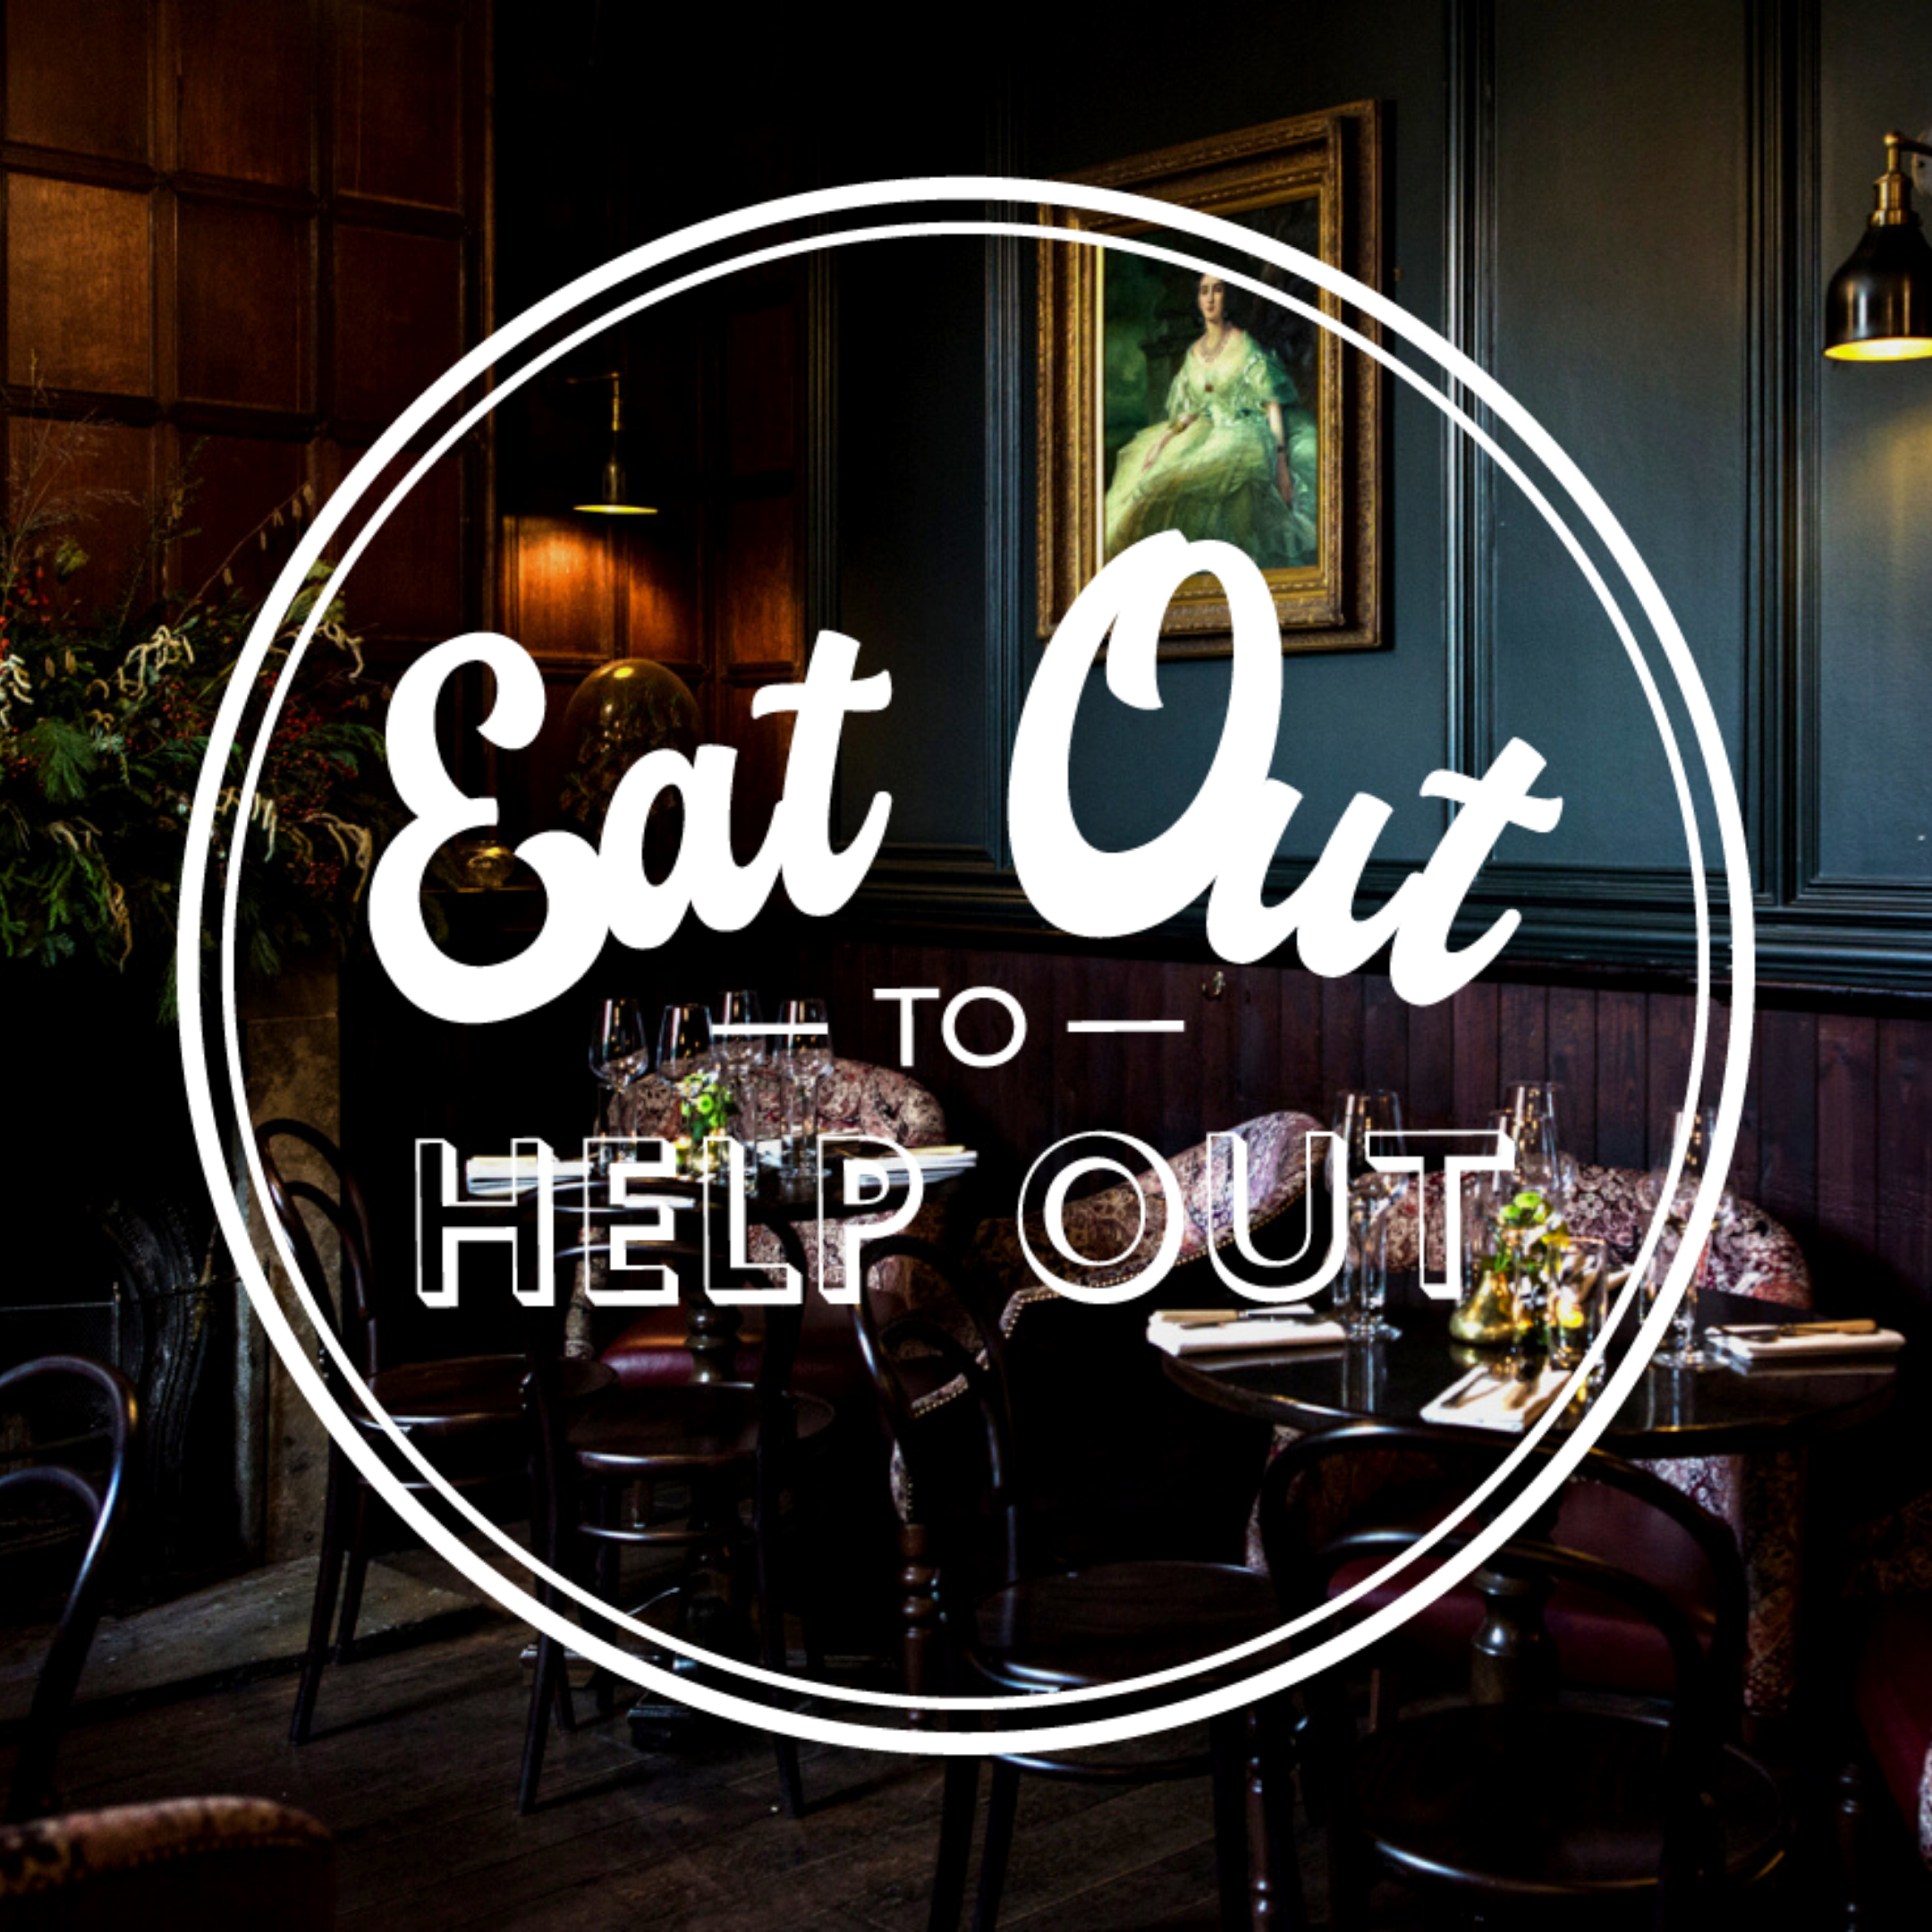 Eat Out to Help Out - Cleveland Arms